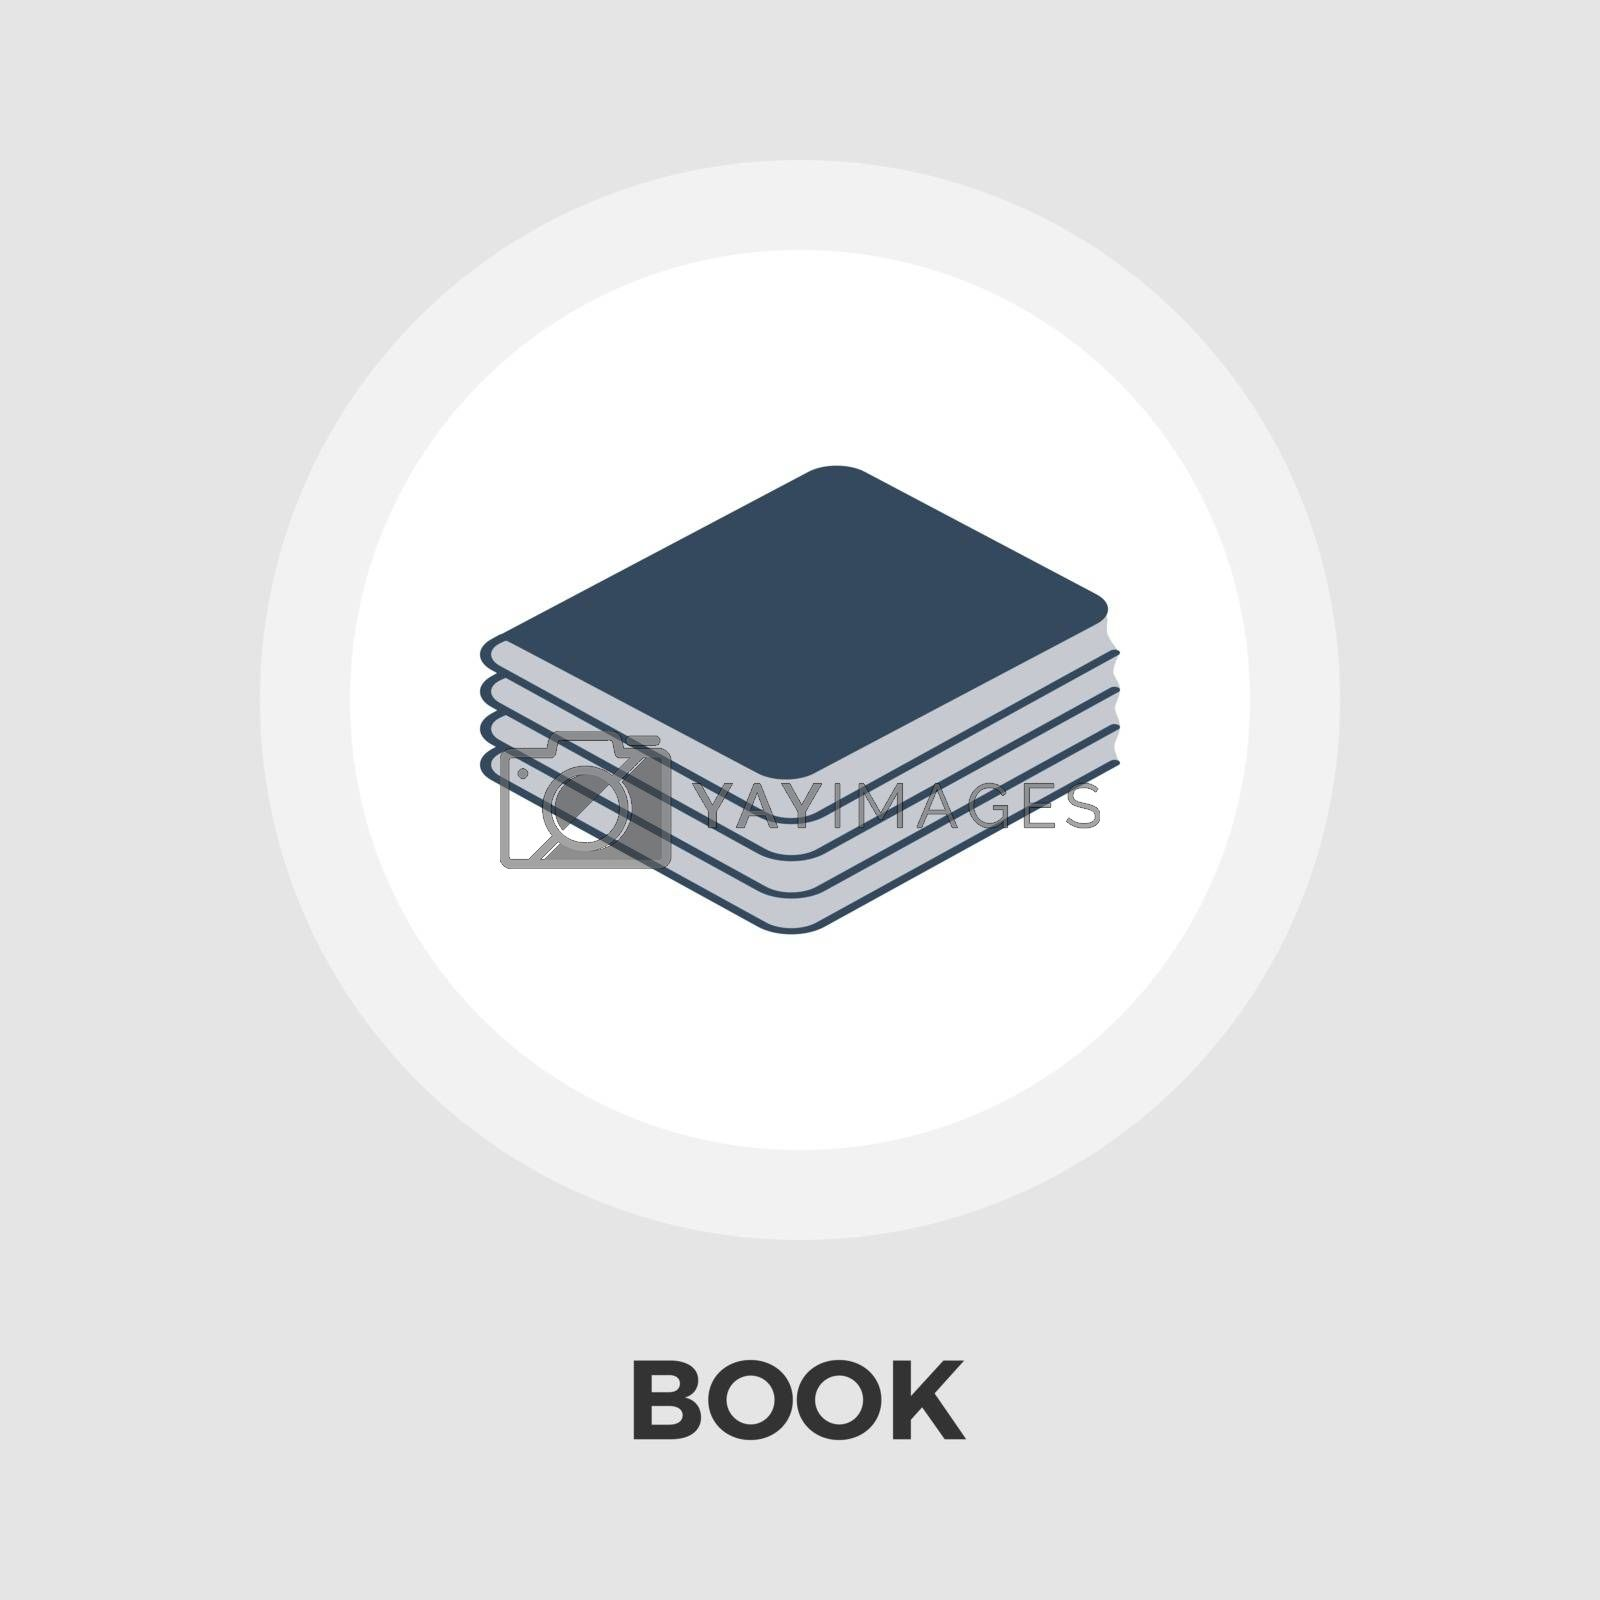 Book Flat Icon by smoki